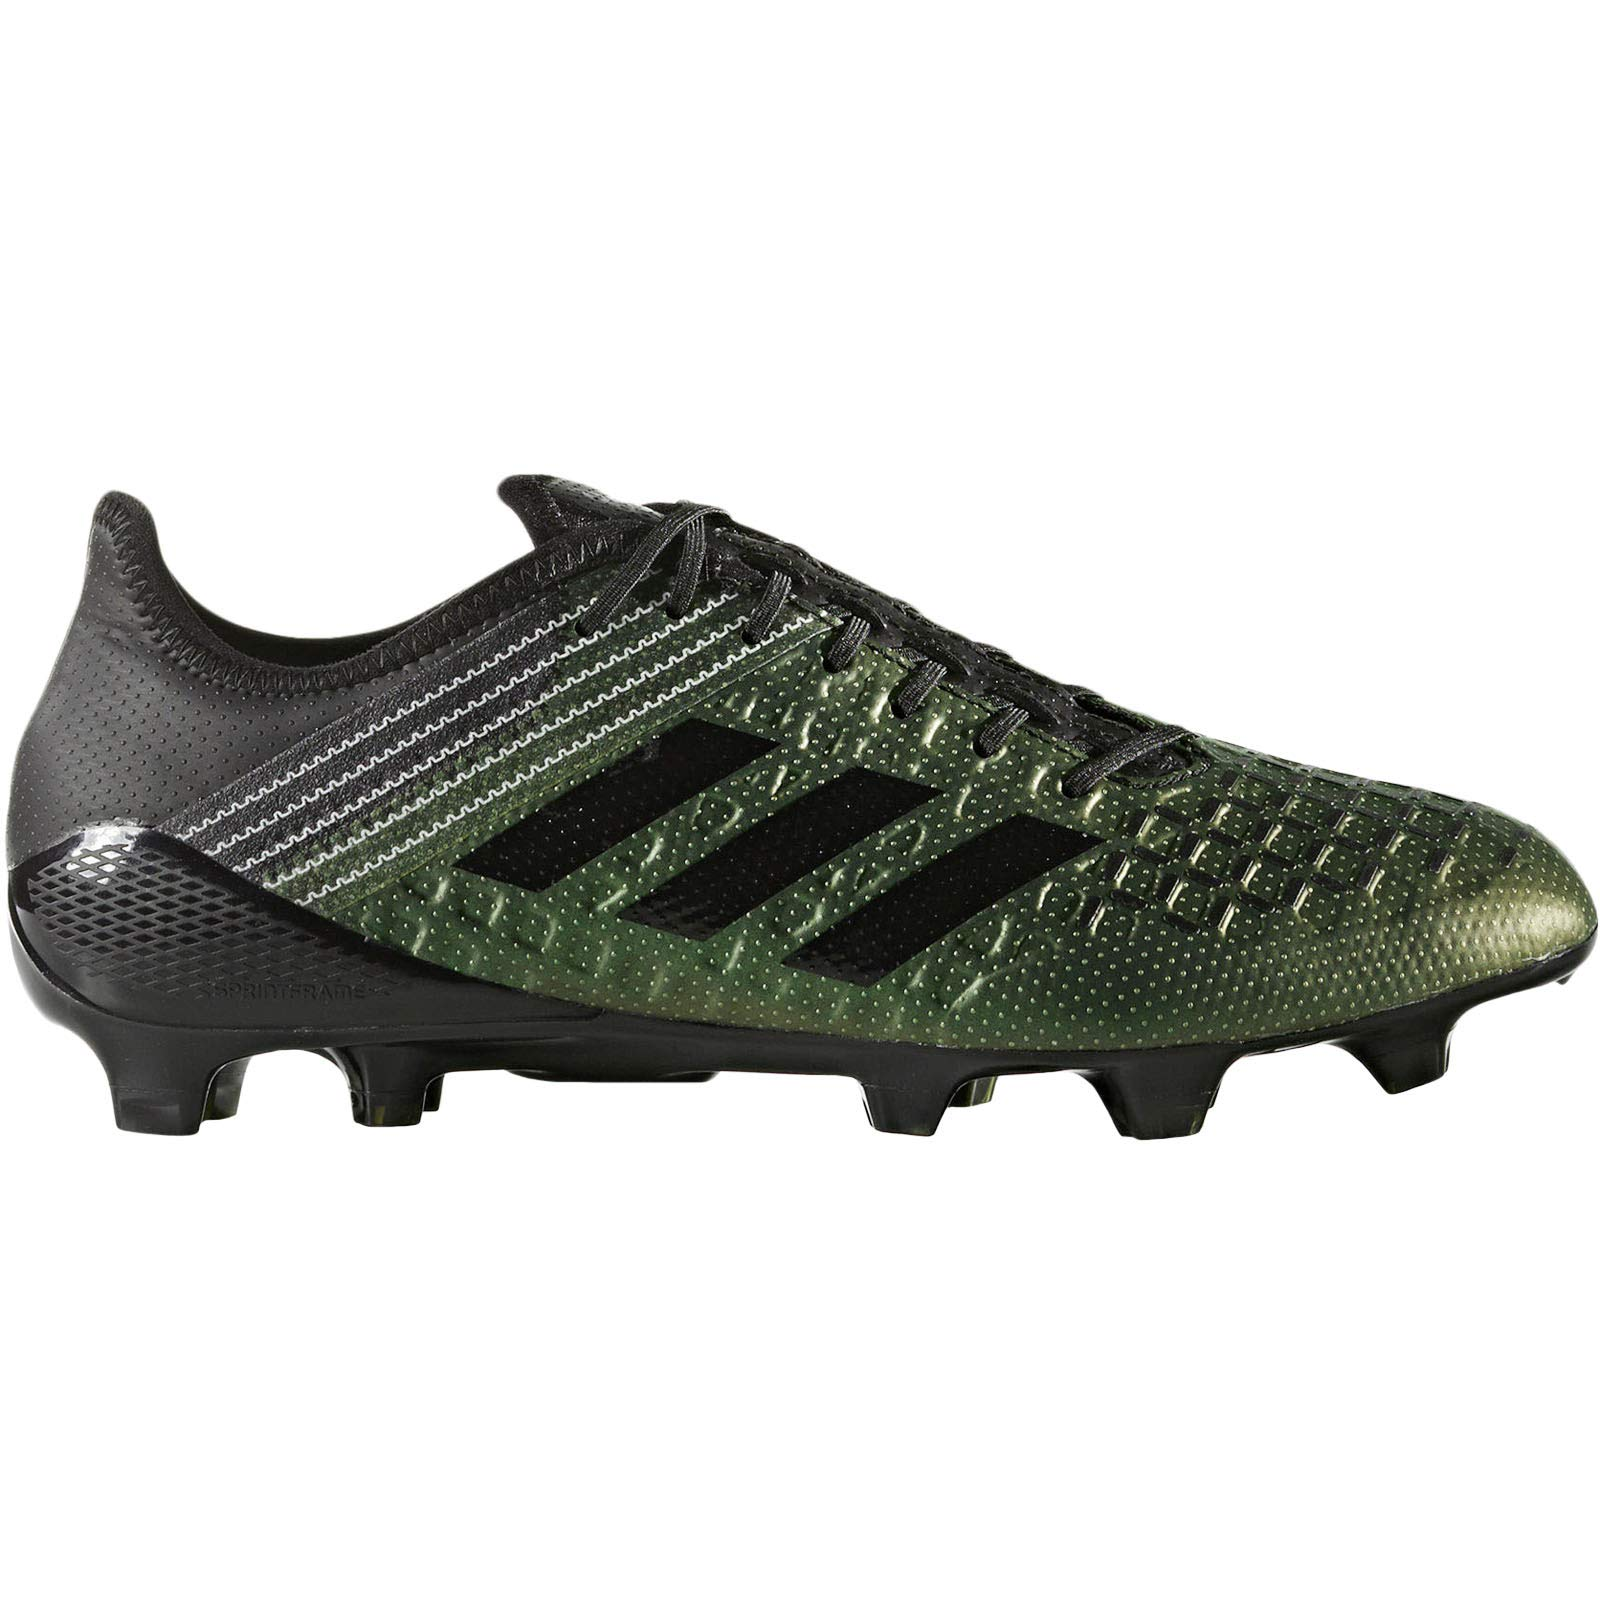 19bd5871acfa ... top quality adidas performance mens predator malice control fg rugby  boots 8211 10.5uk 41ztg0xtqul 5eb7c